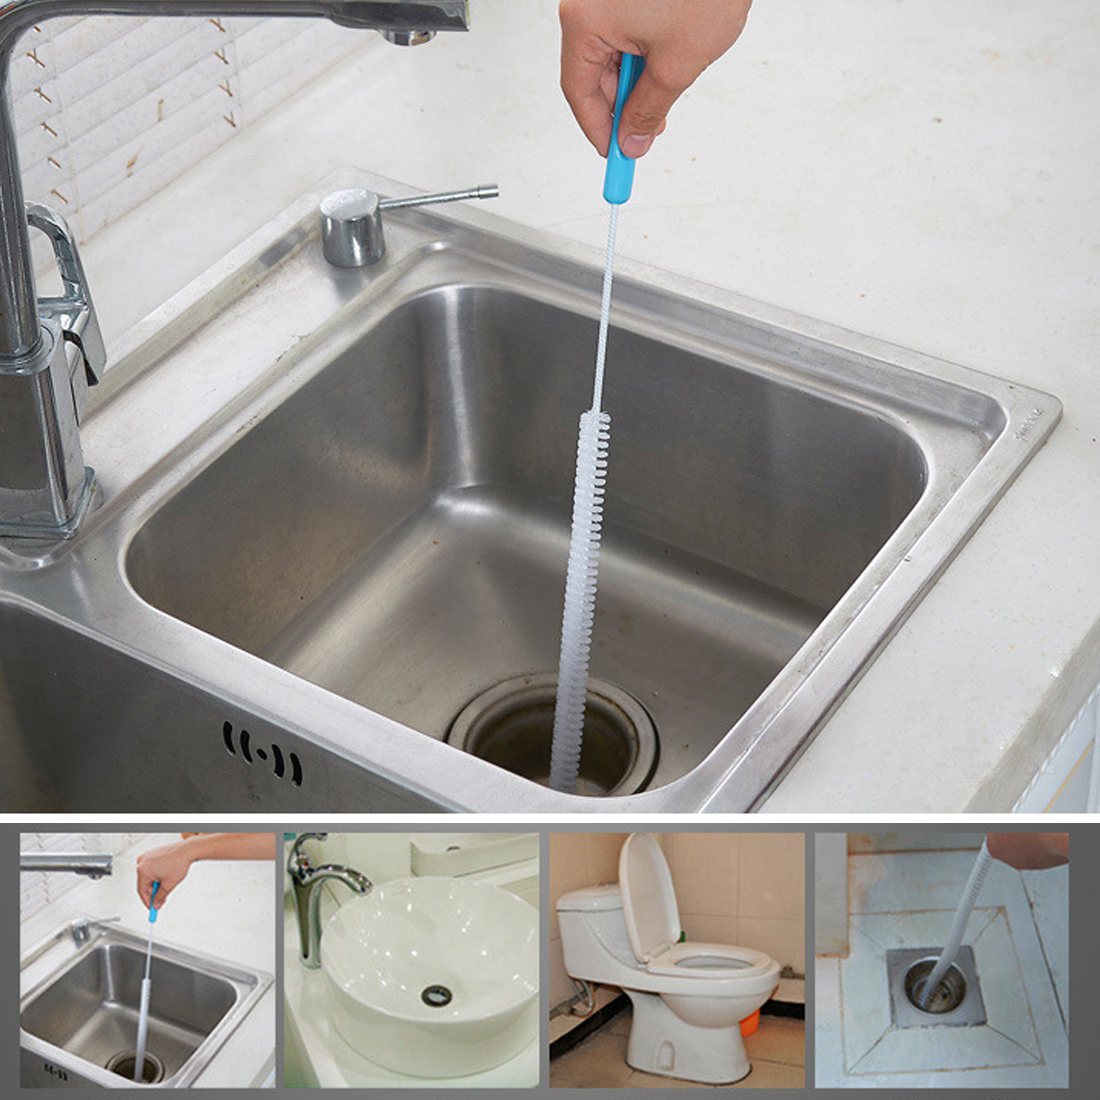 Sewer Cleaning Brush Home Bendable Sink Tub Toilet Dredge